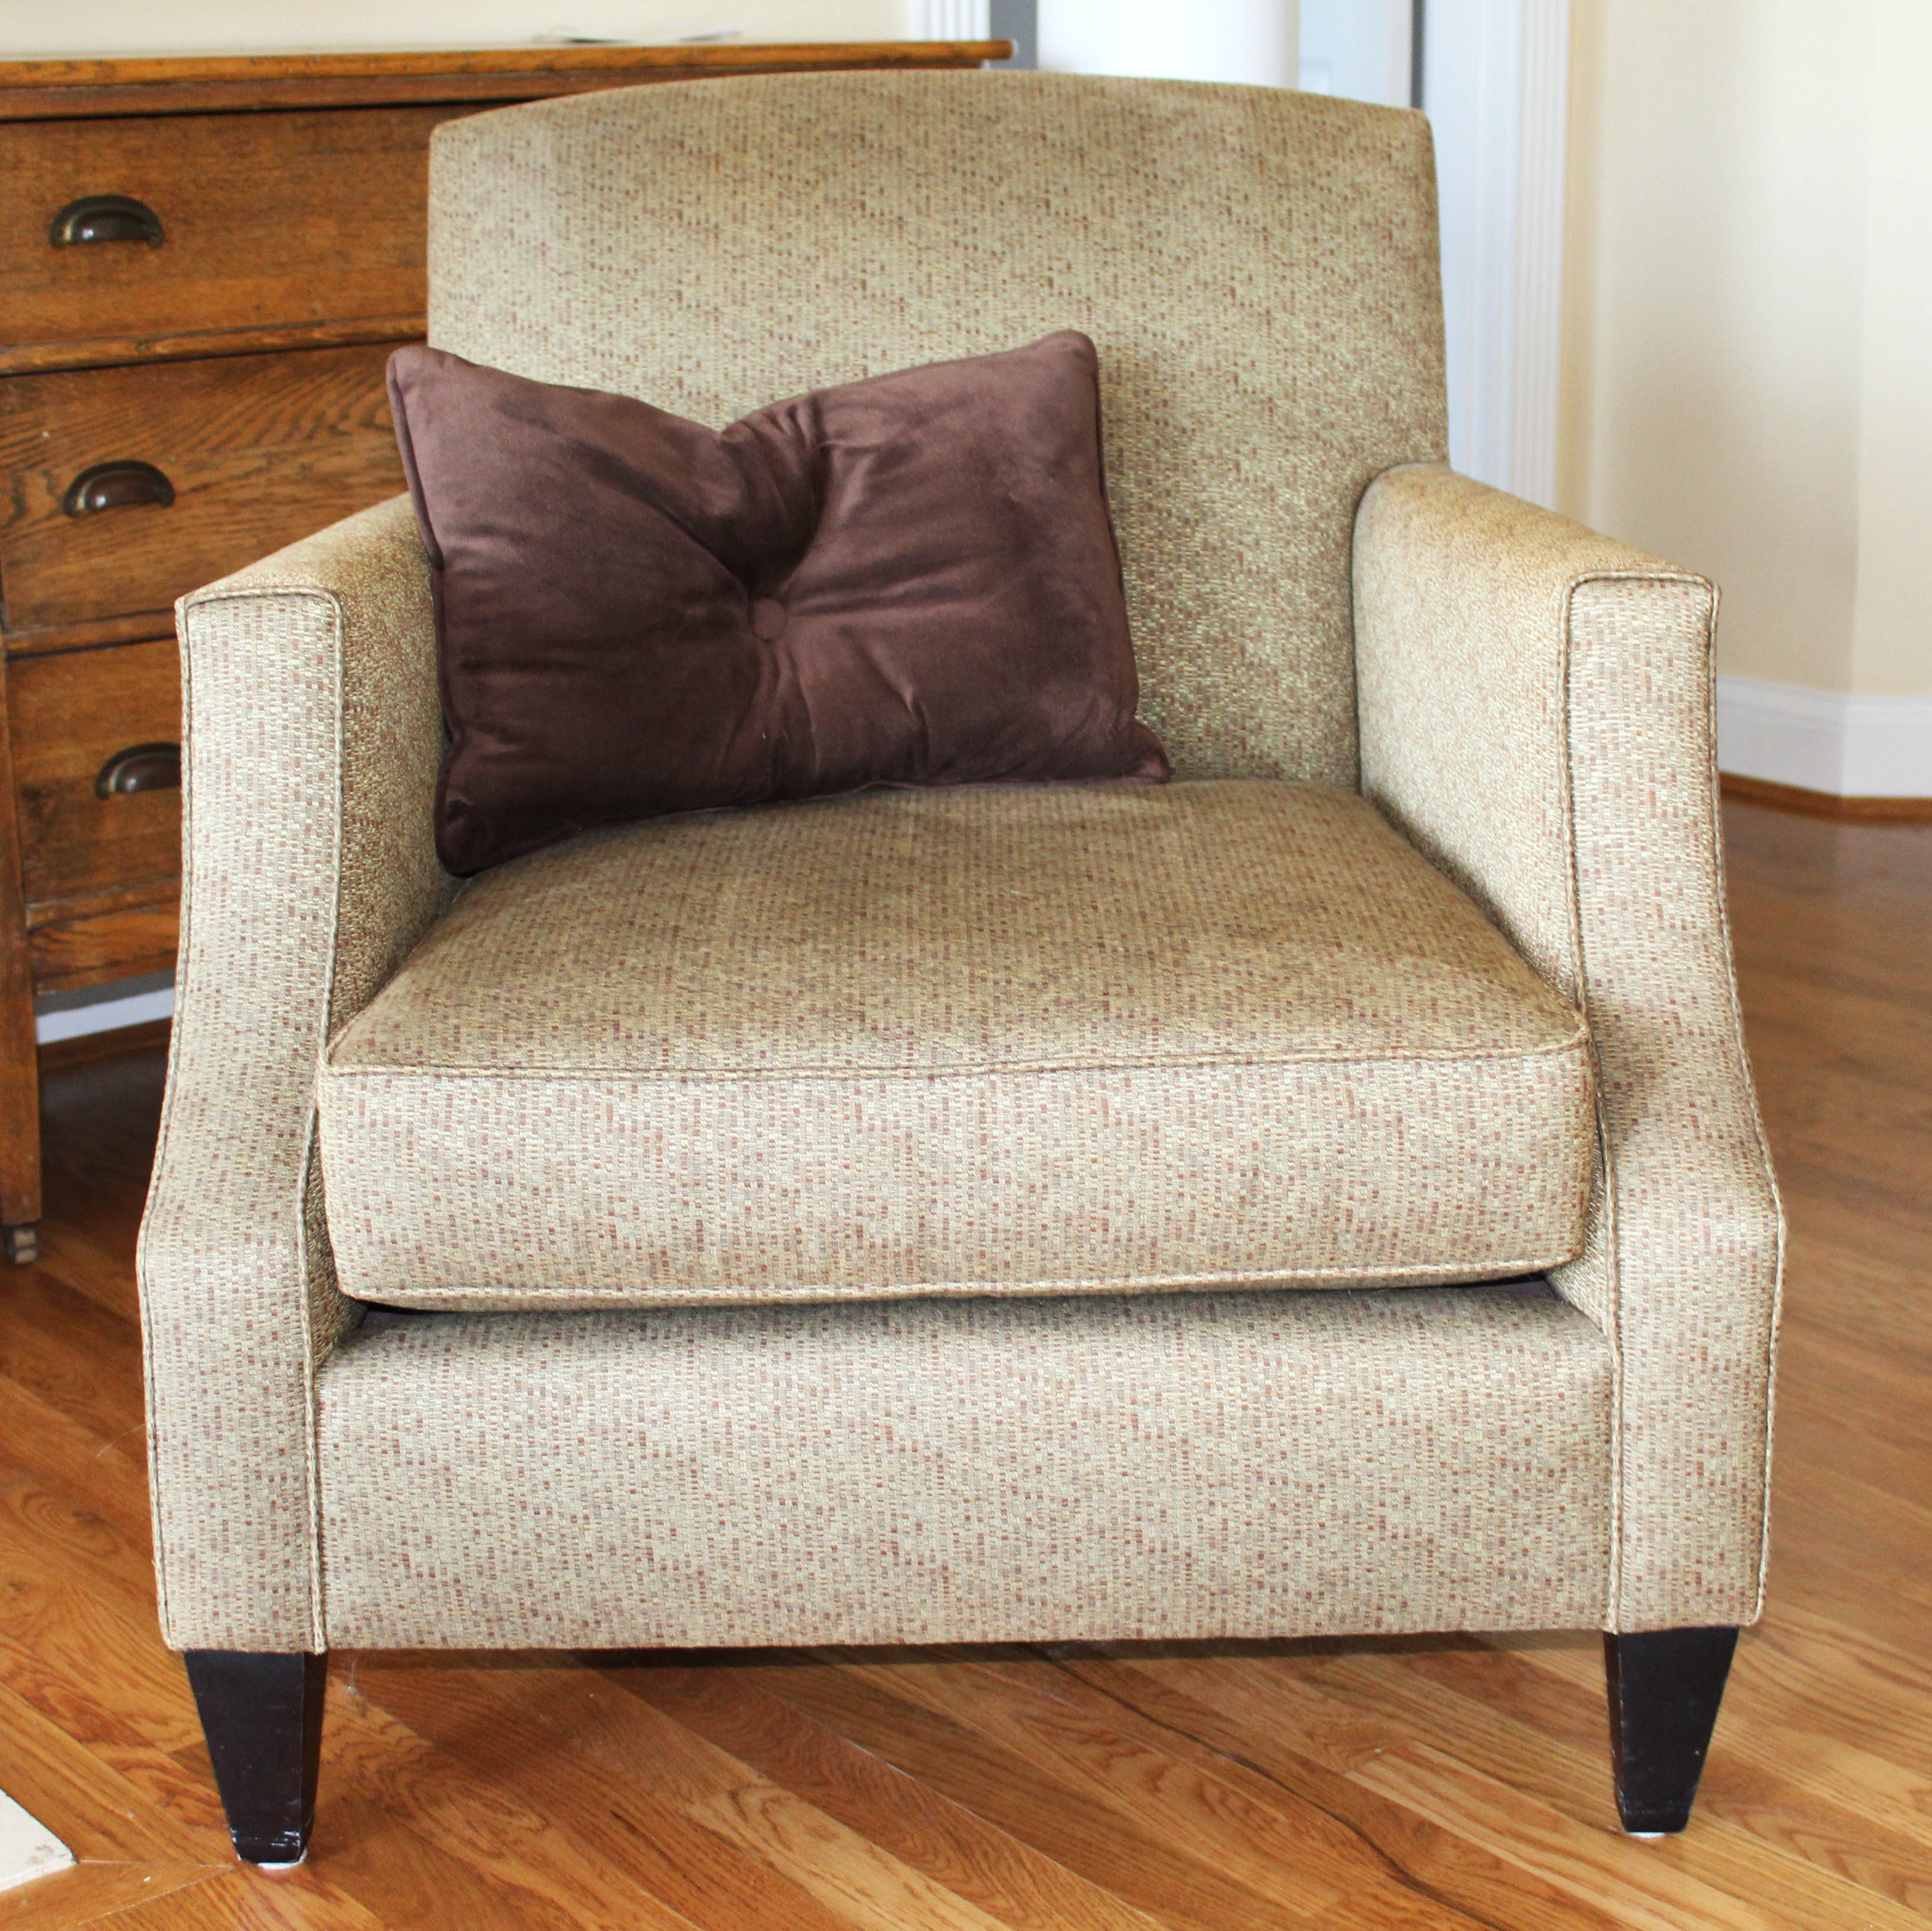 Crate and Barrel Multi Hue Club Chair